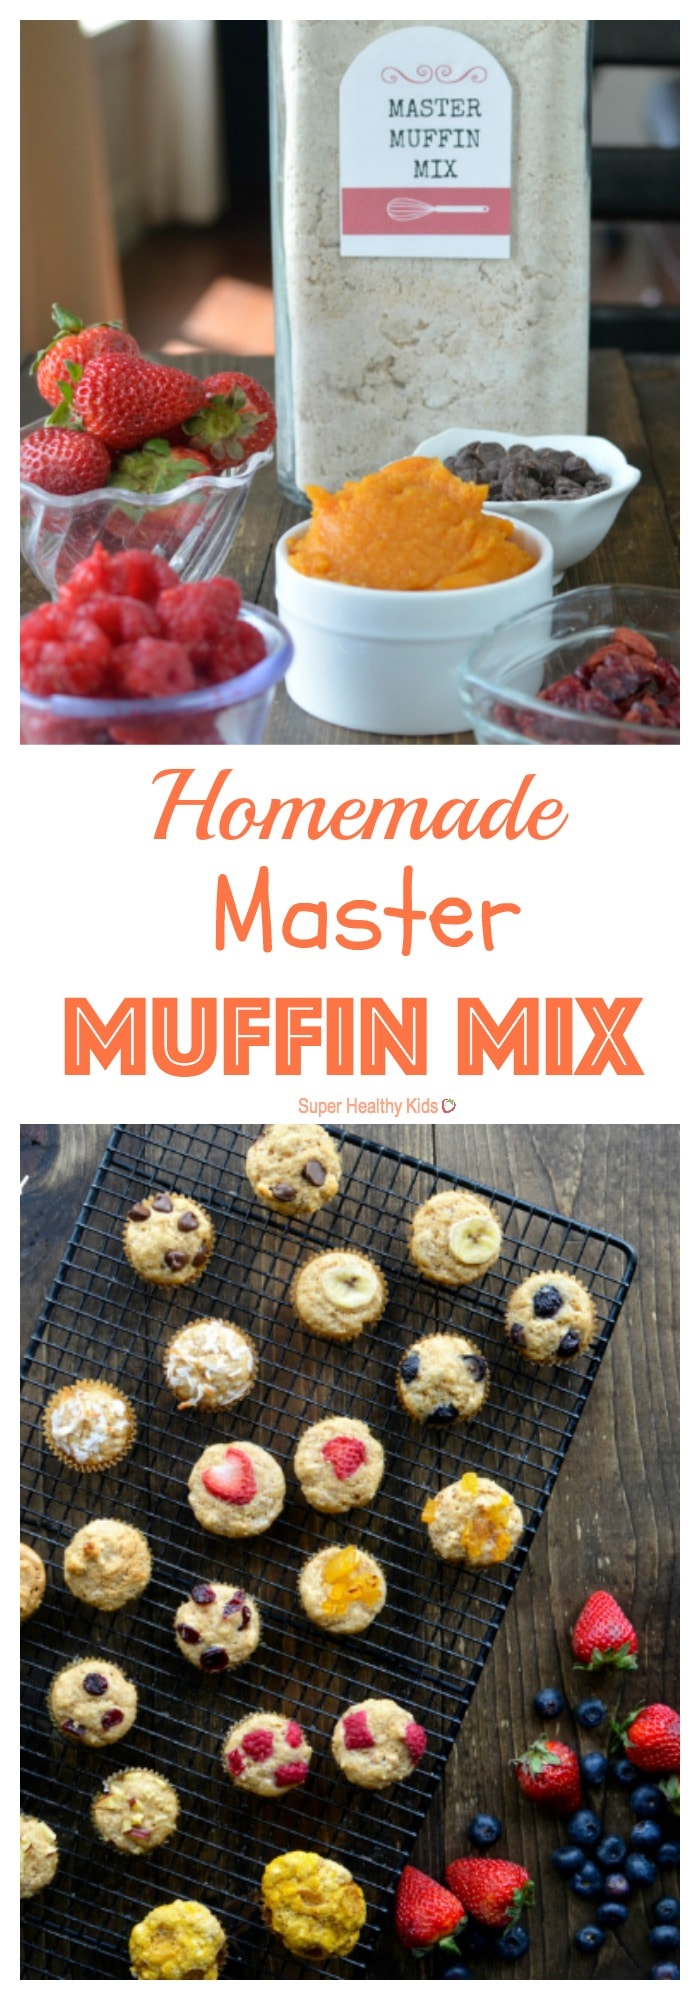 Homemade Master Muffin Mix Recipe. No need to buy pre-made muffin mixes from the store- we've got all you need to make your own mix. Your kids will have trouble deciding which muffins to try first! http://www.superhealthykids.com/homemade-master-muffin-mix/